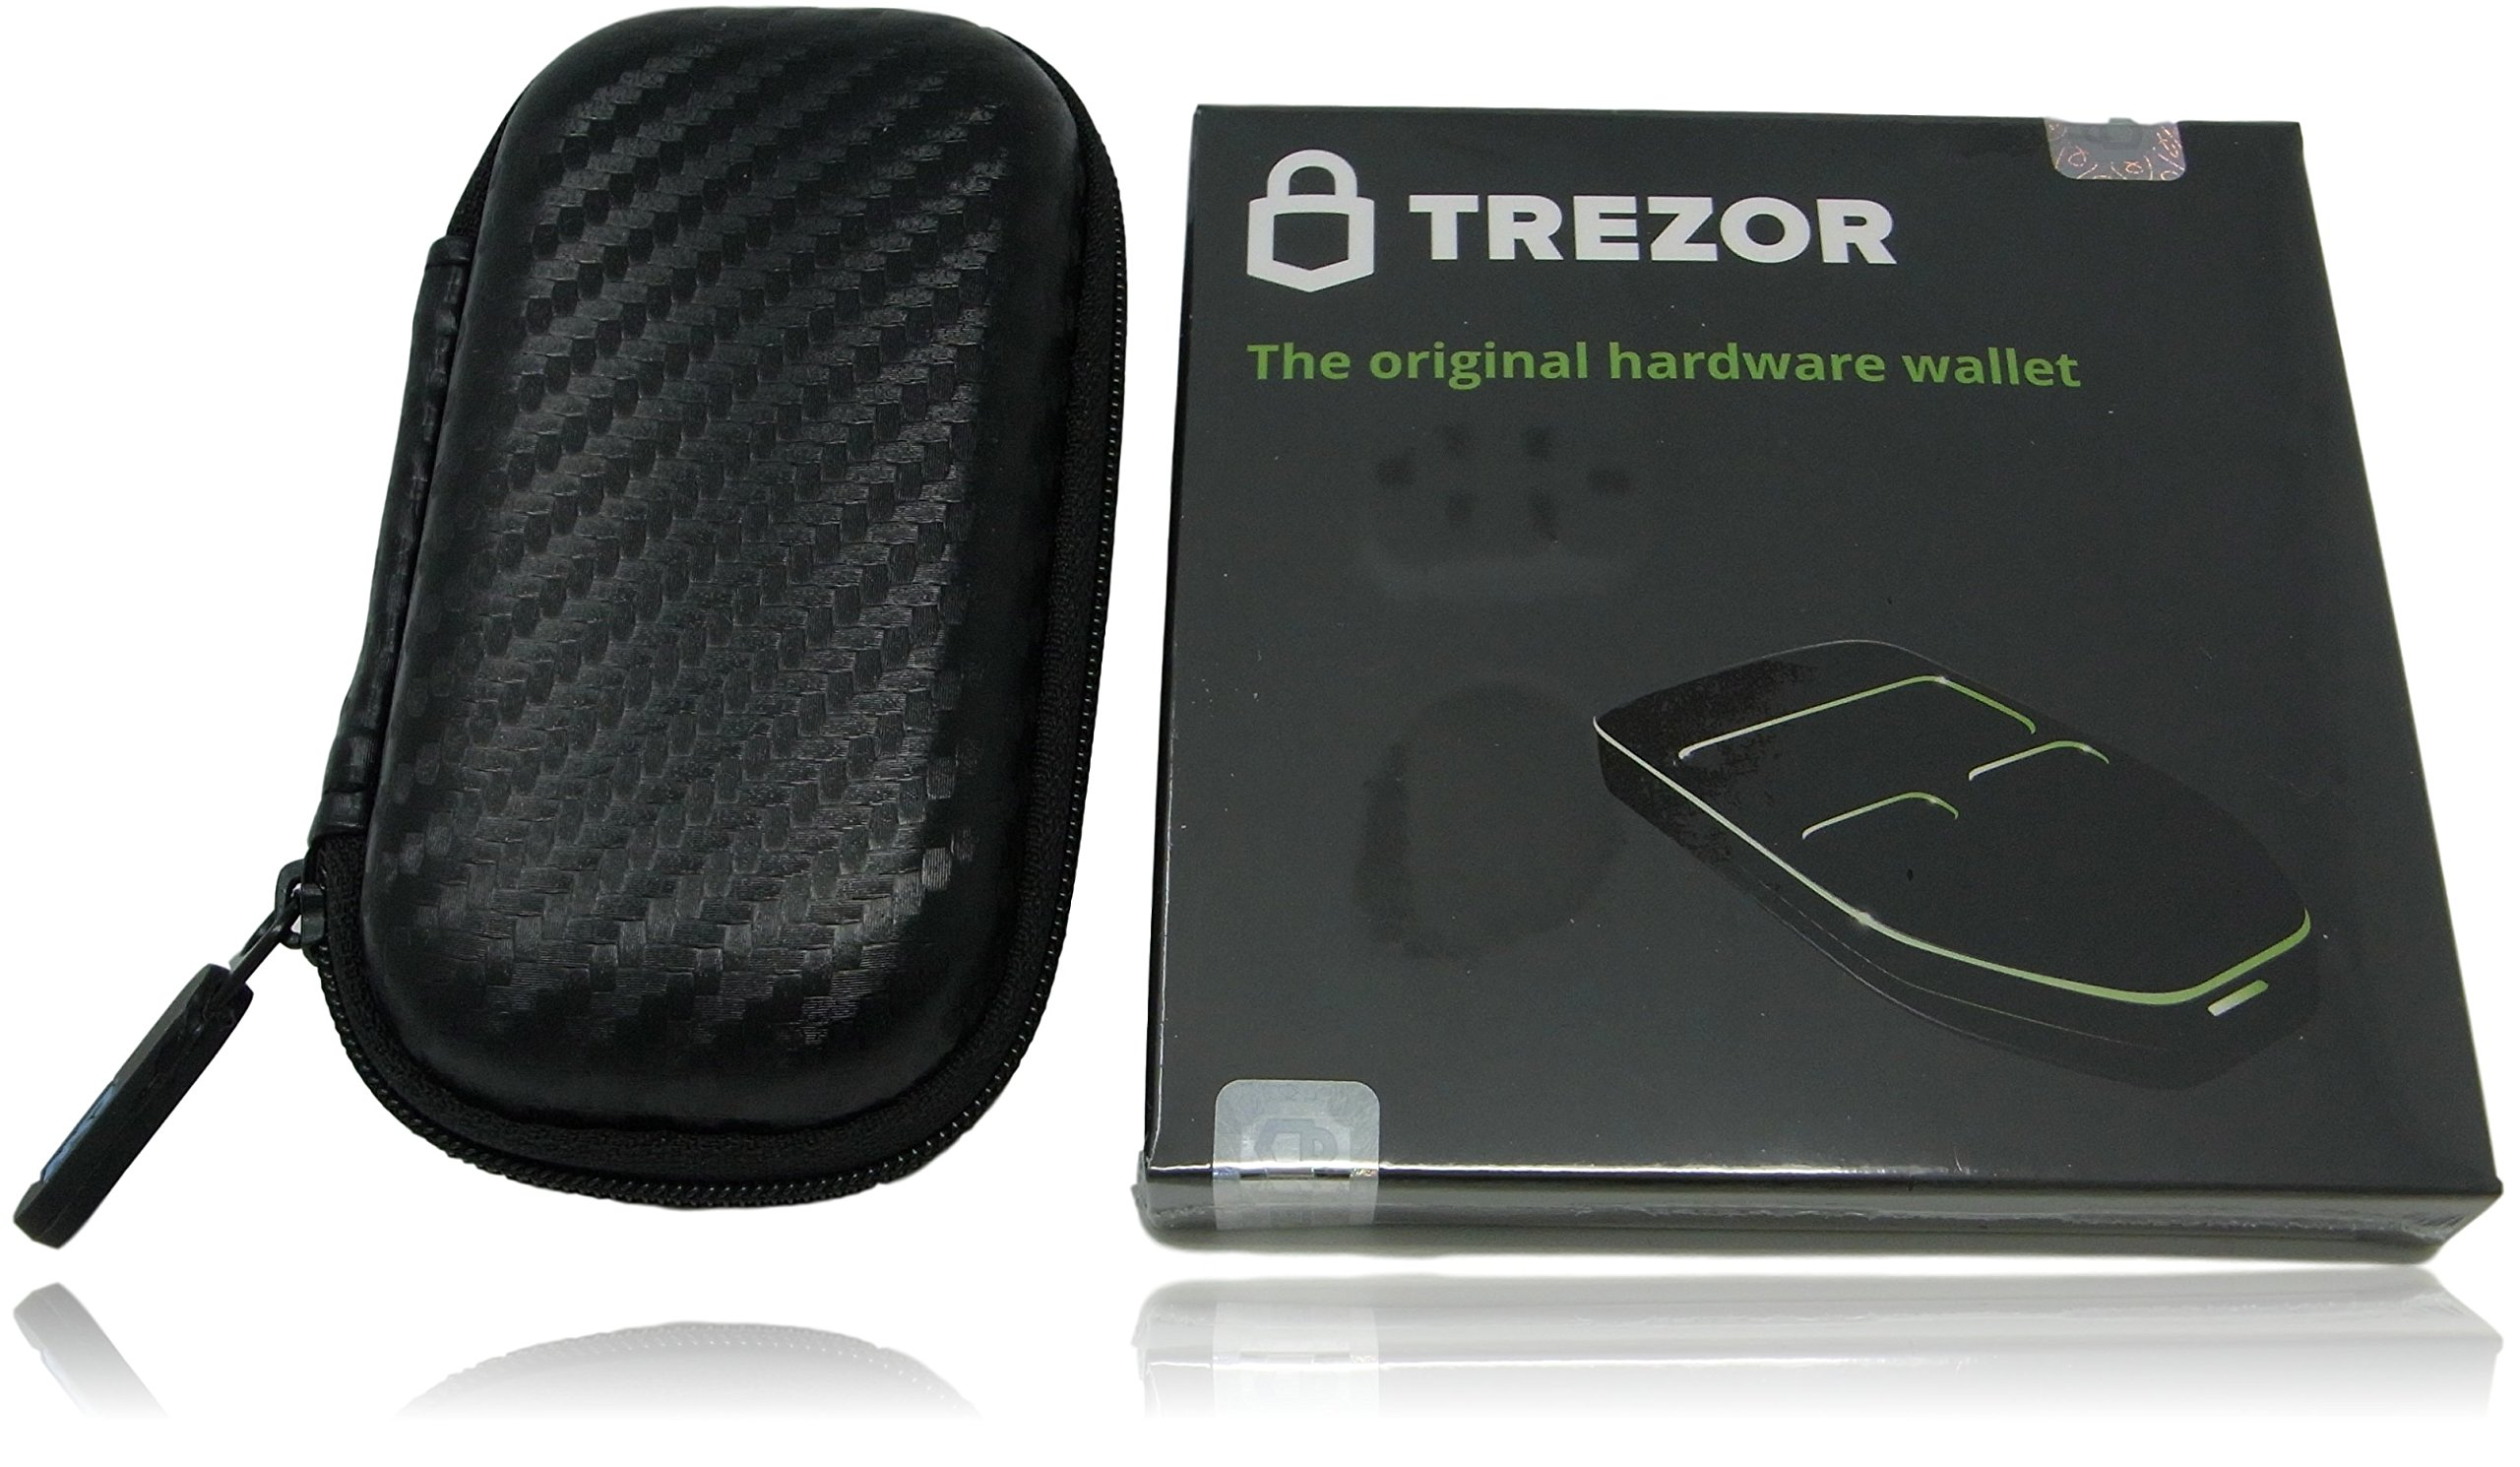 Trezor Bitcoin Hardware Wallet with Custom Case Bundle, Cryptocurrency Storage and Carrying Case, Shockproof, Water Resistant (Black Bundle)